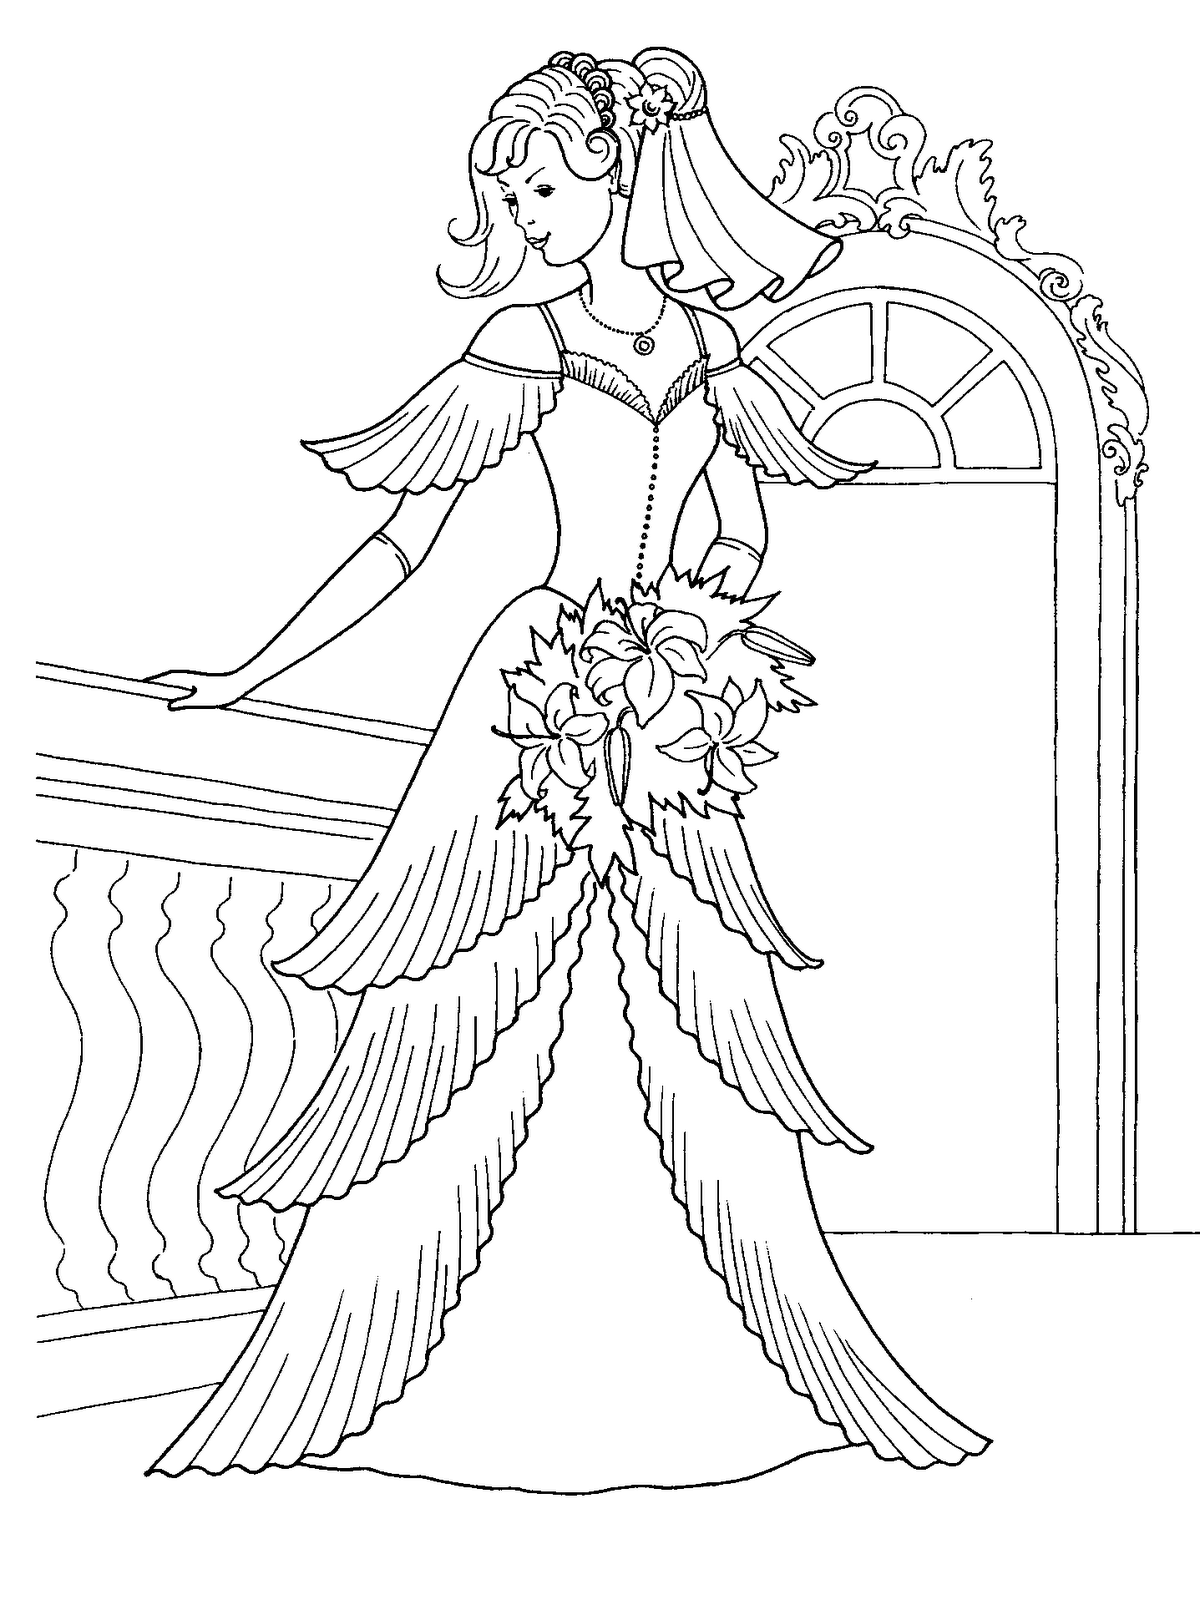 wedding dresses coloring pages wedding dress coloring pages coloring home pages coloring dresses wedding